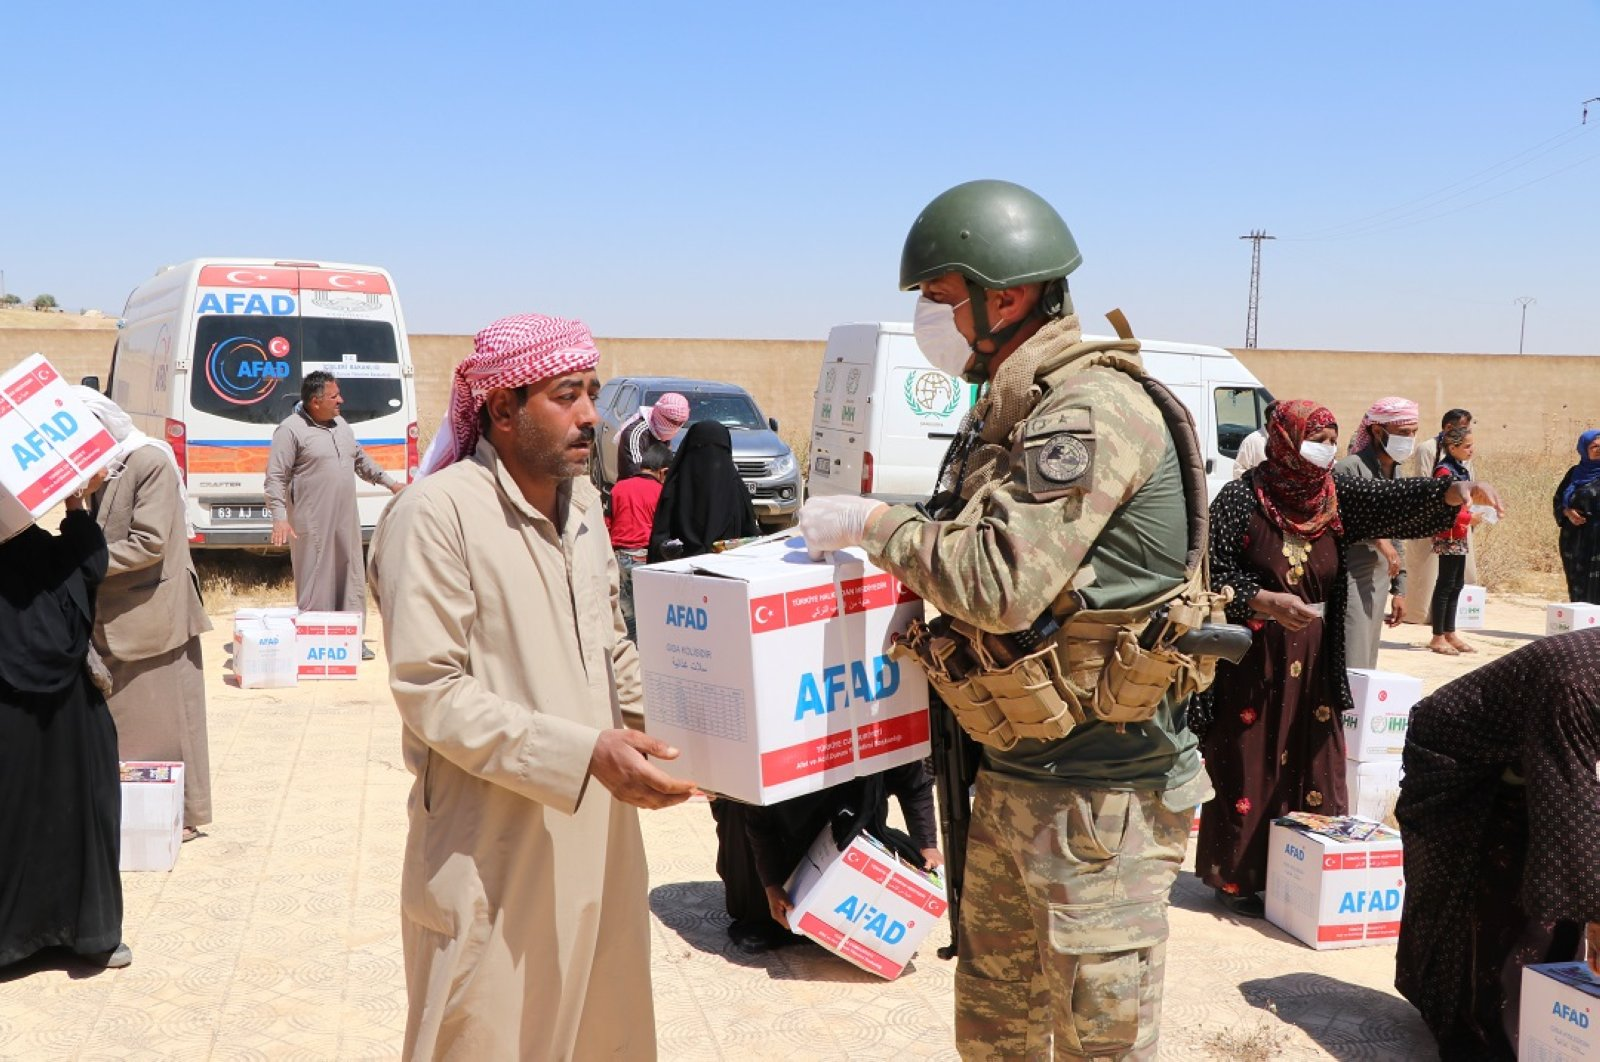 The Disaster and Emergency Management Authority (AFAD) distributed food aid in six villages of Tal Abyad, northern Syria, June 5, 2020. (AA Photo)